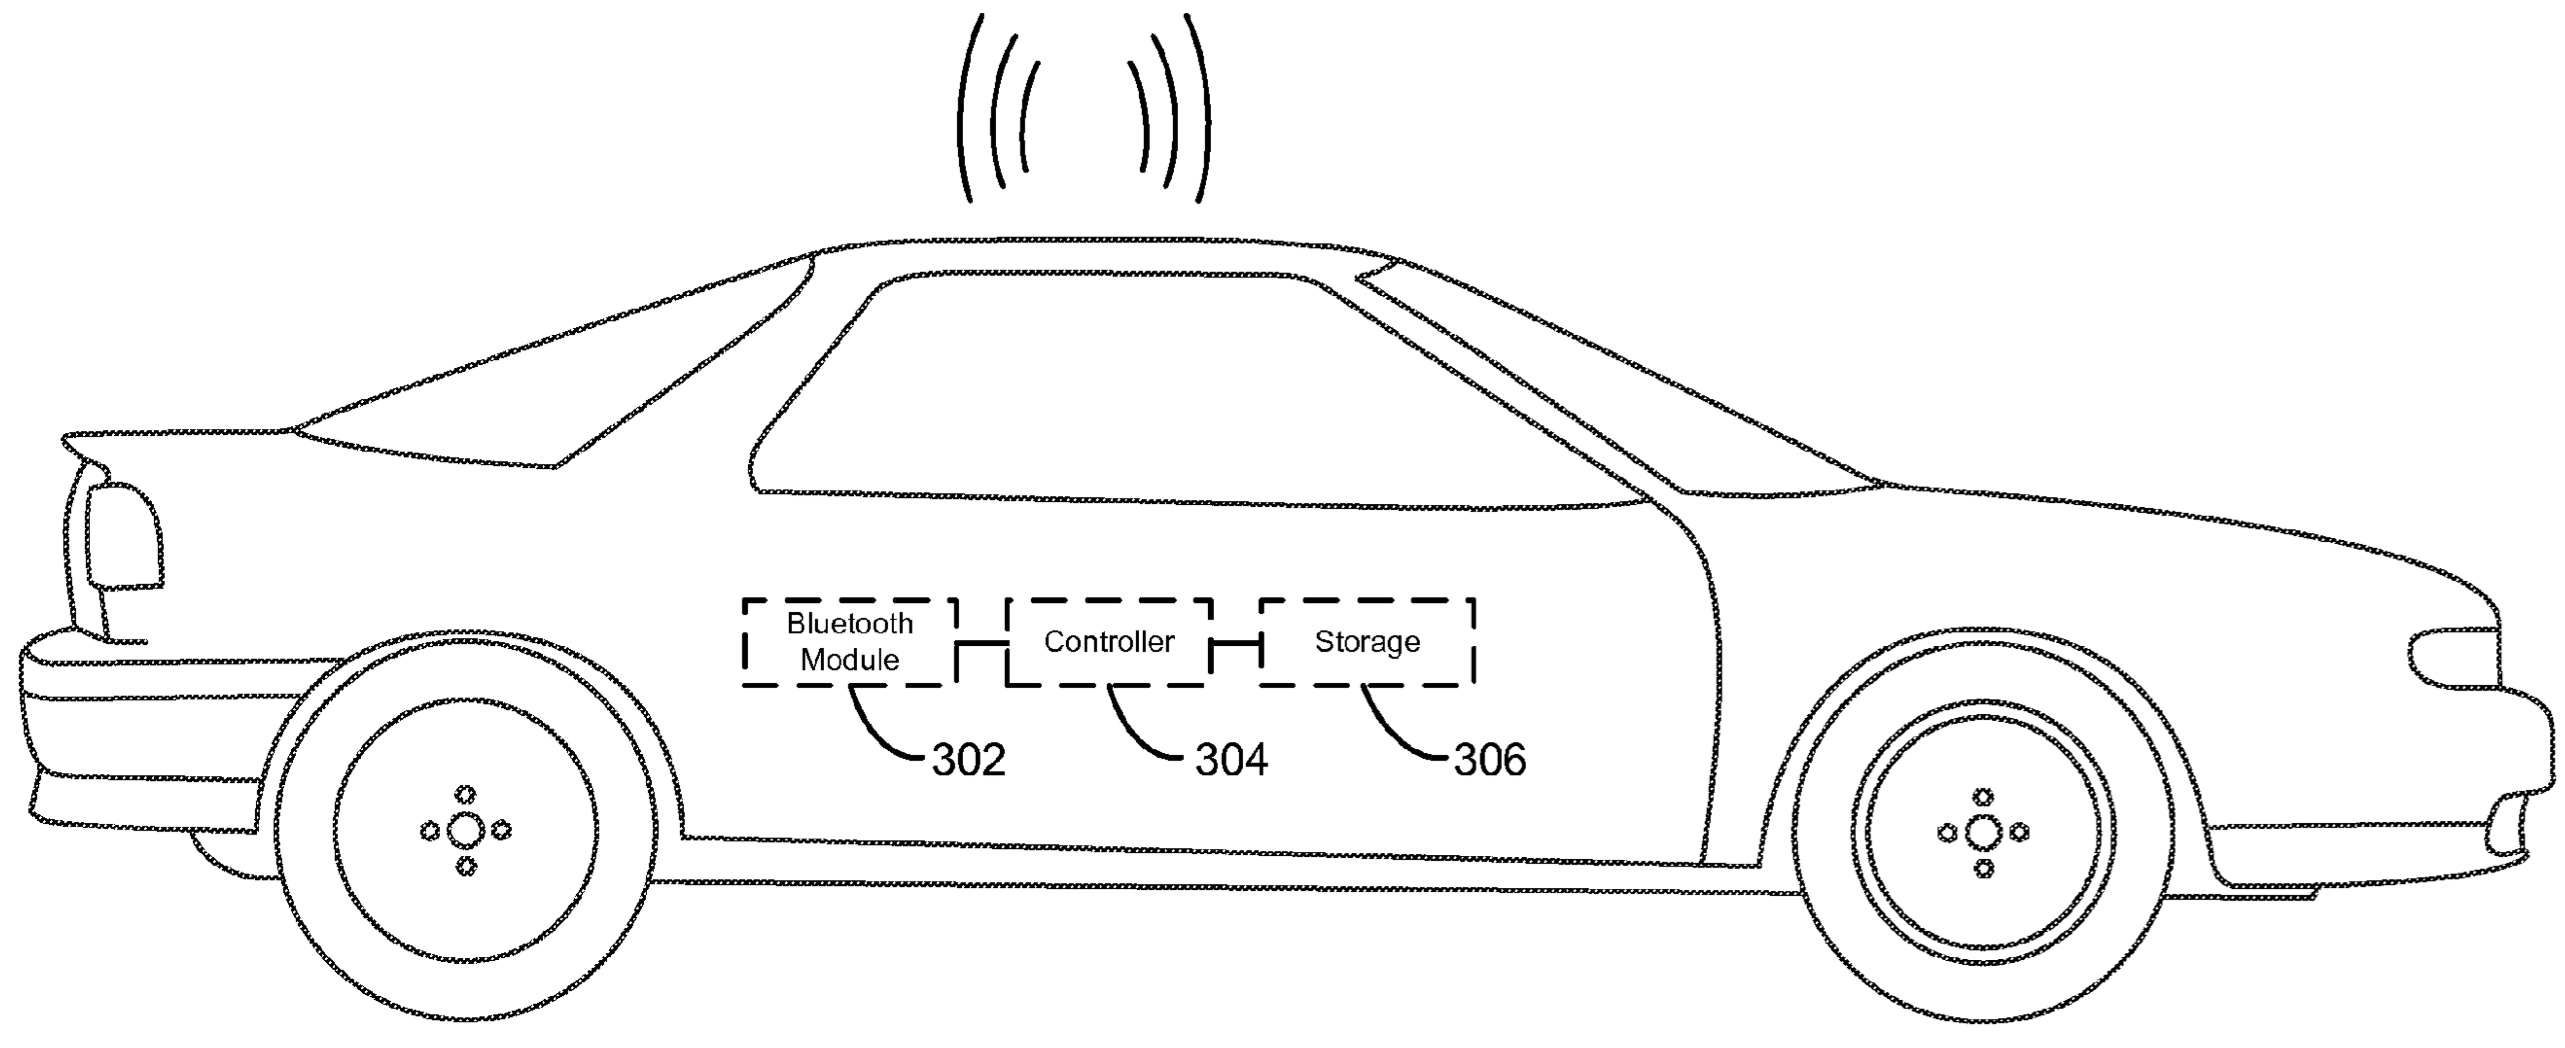 Apple Granted A Patent That D Allow Advanced Car Control